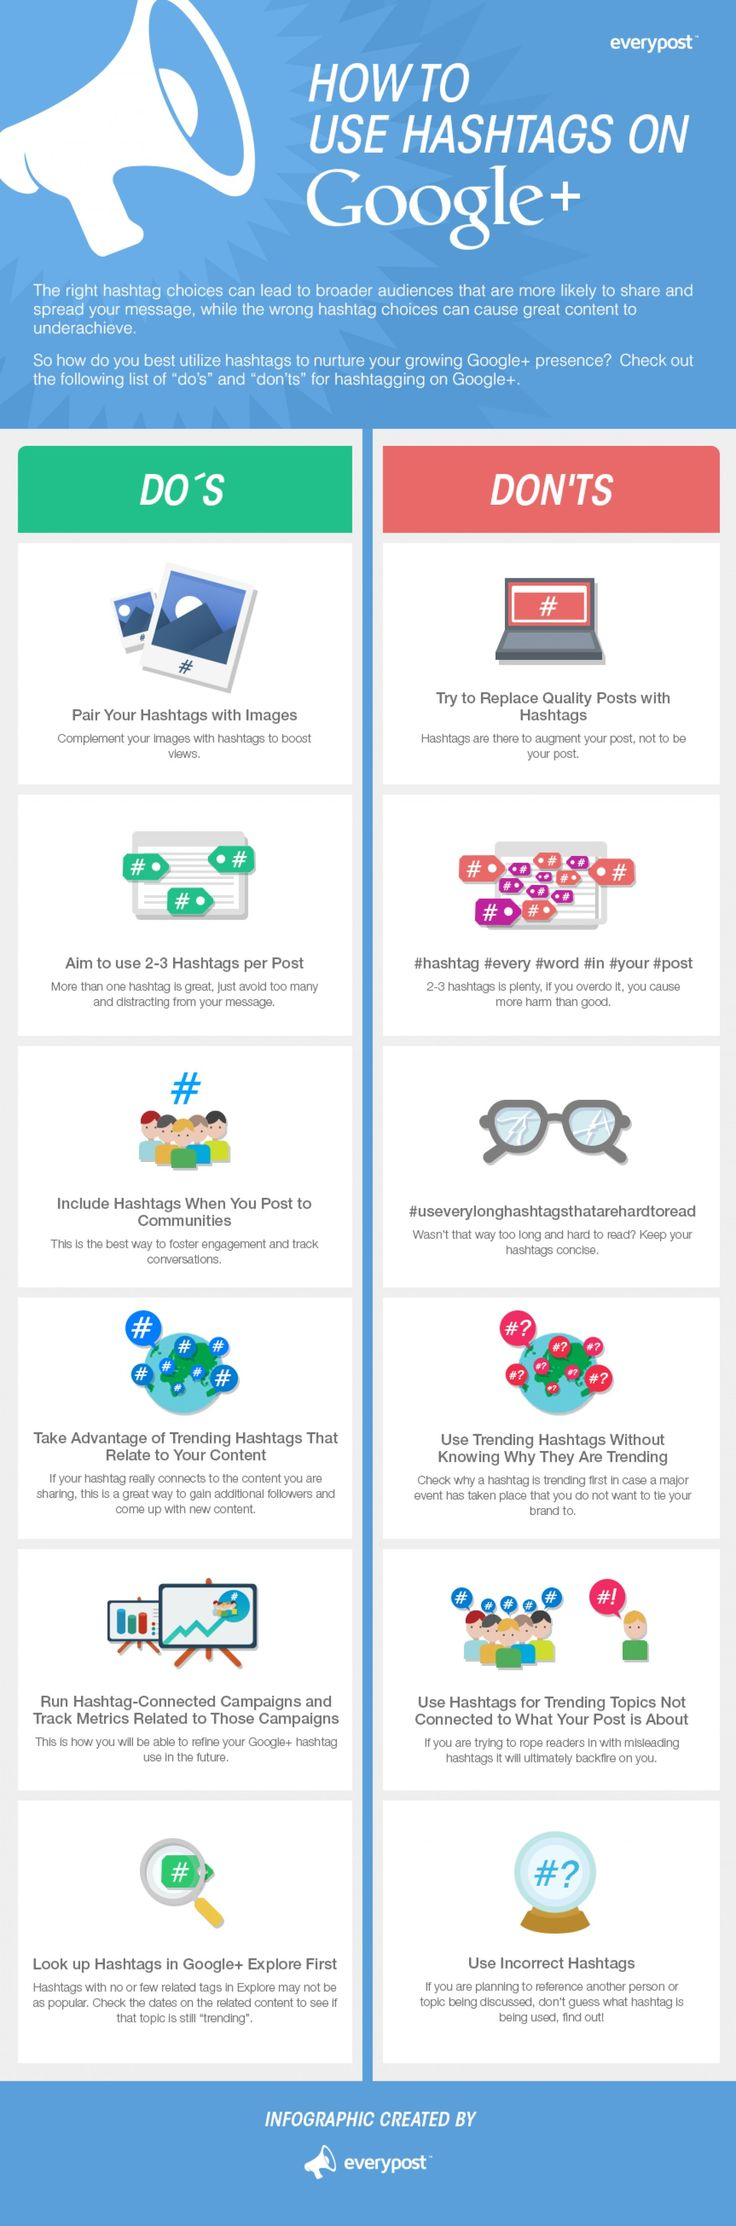 how to right way use hashtag in Google+